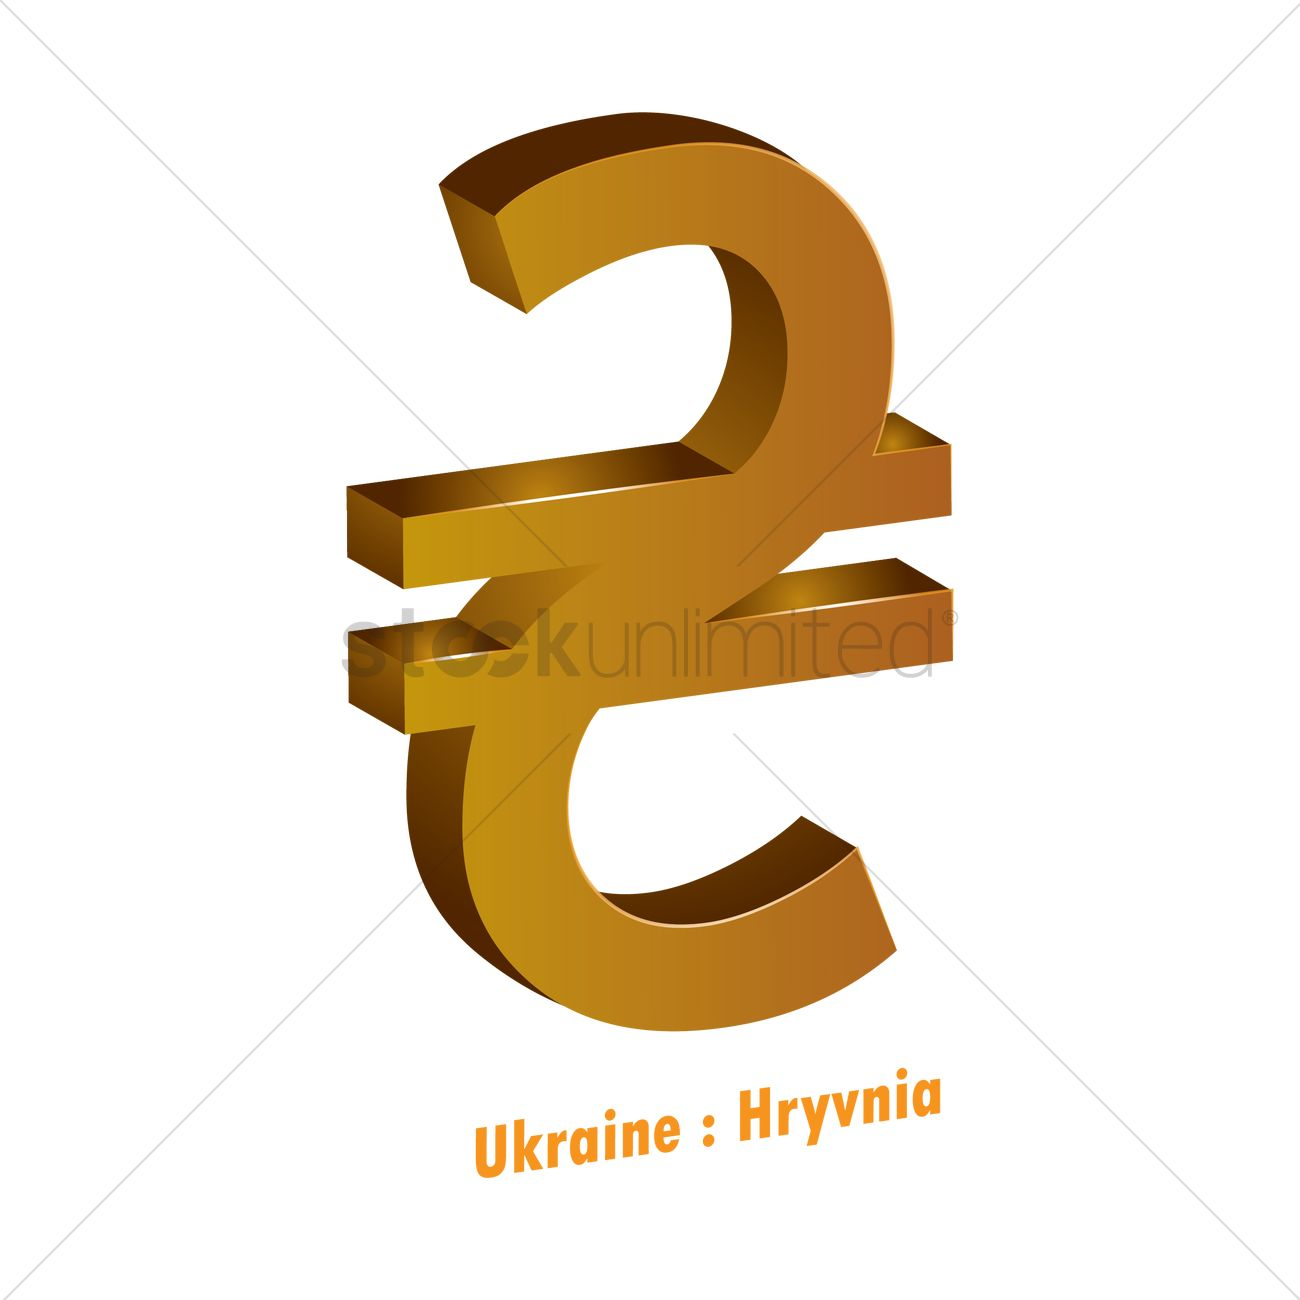 Hryvnia Currency Symbol Vector Image 1821597 Stockunlimited